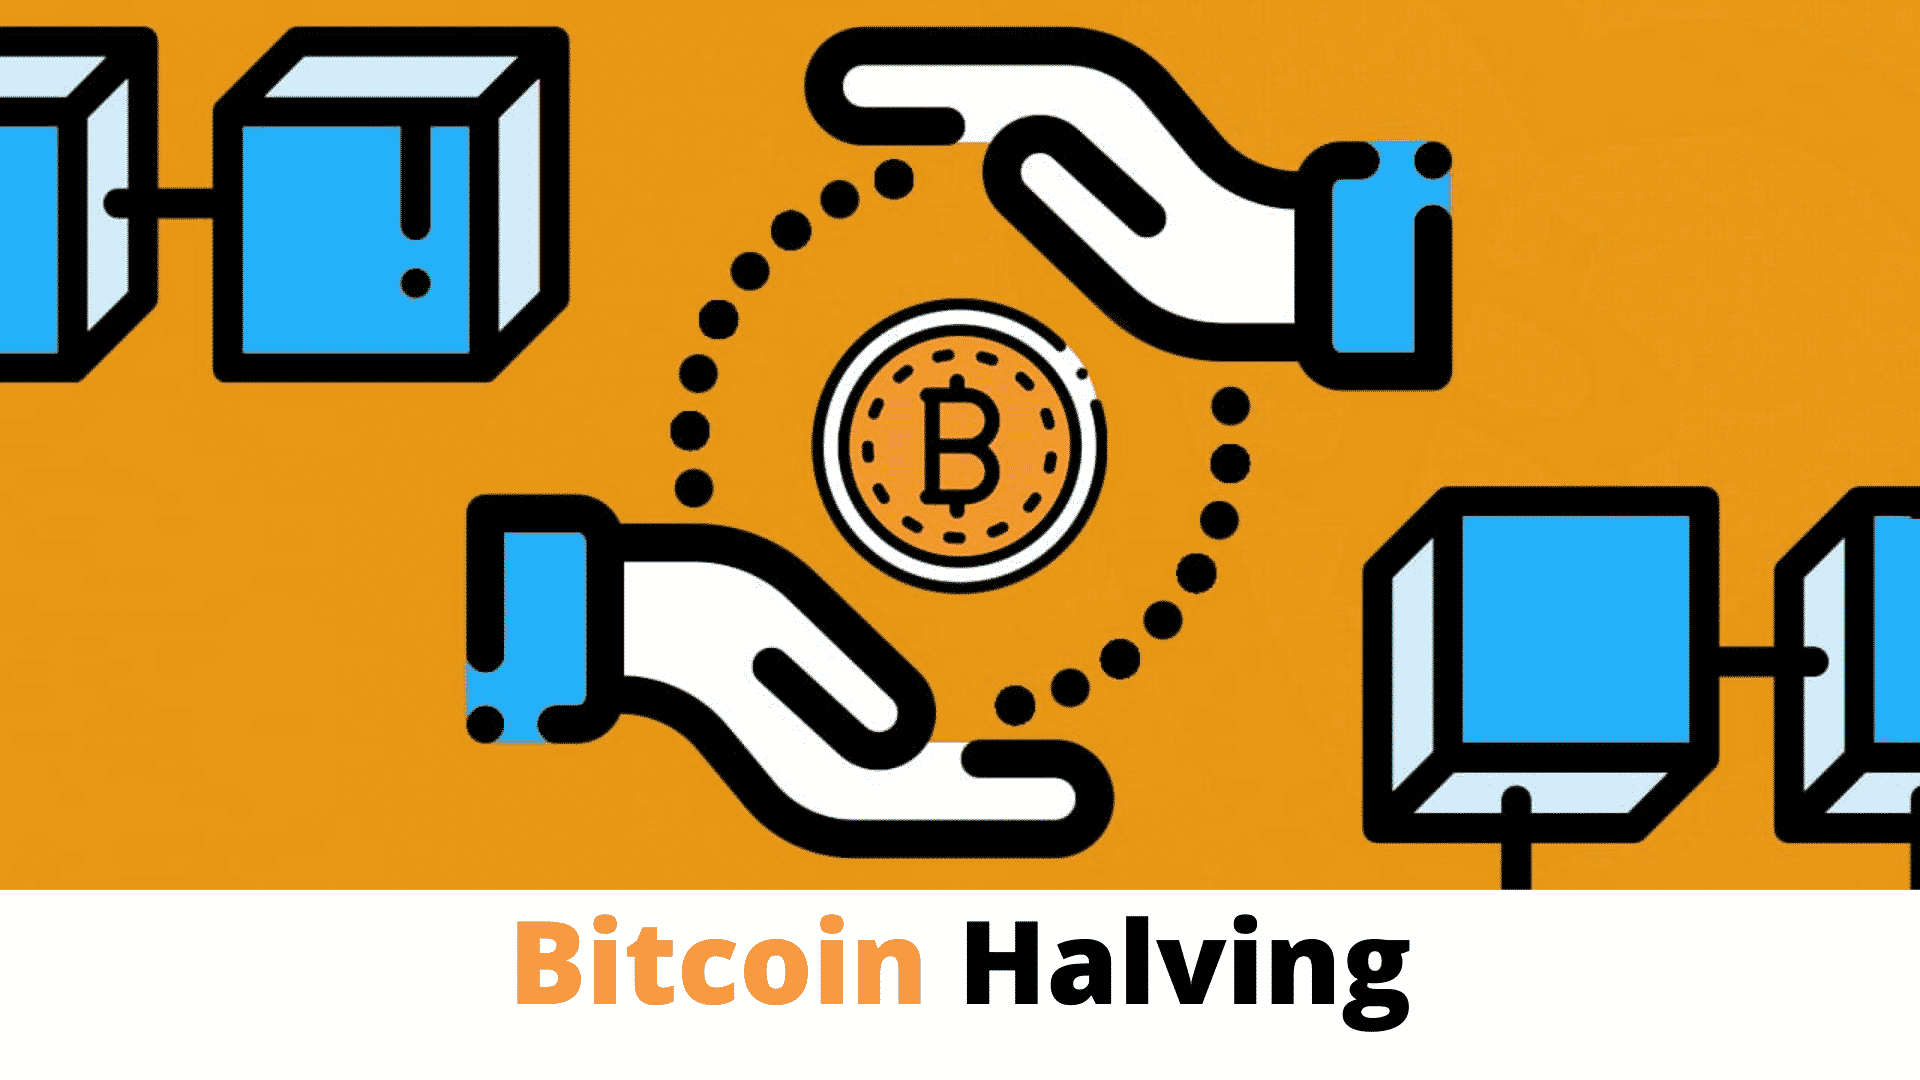 Bitcoin Halving: The Most Important Date In Bitcoin